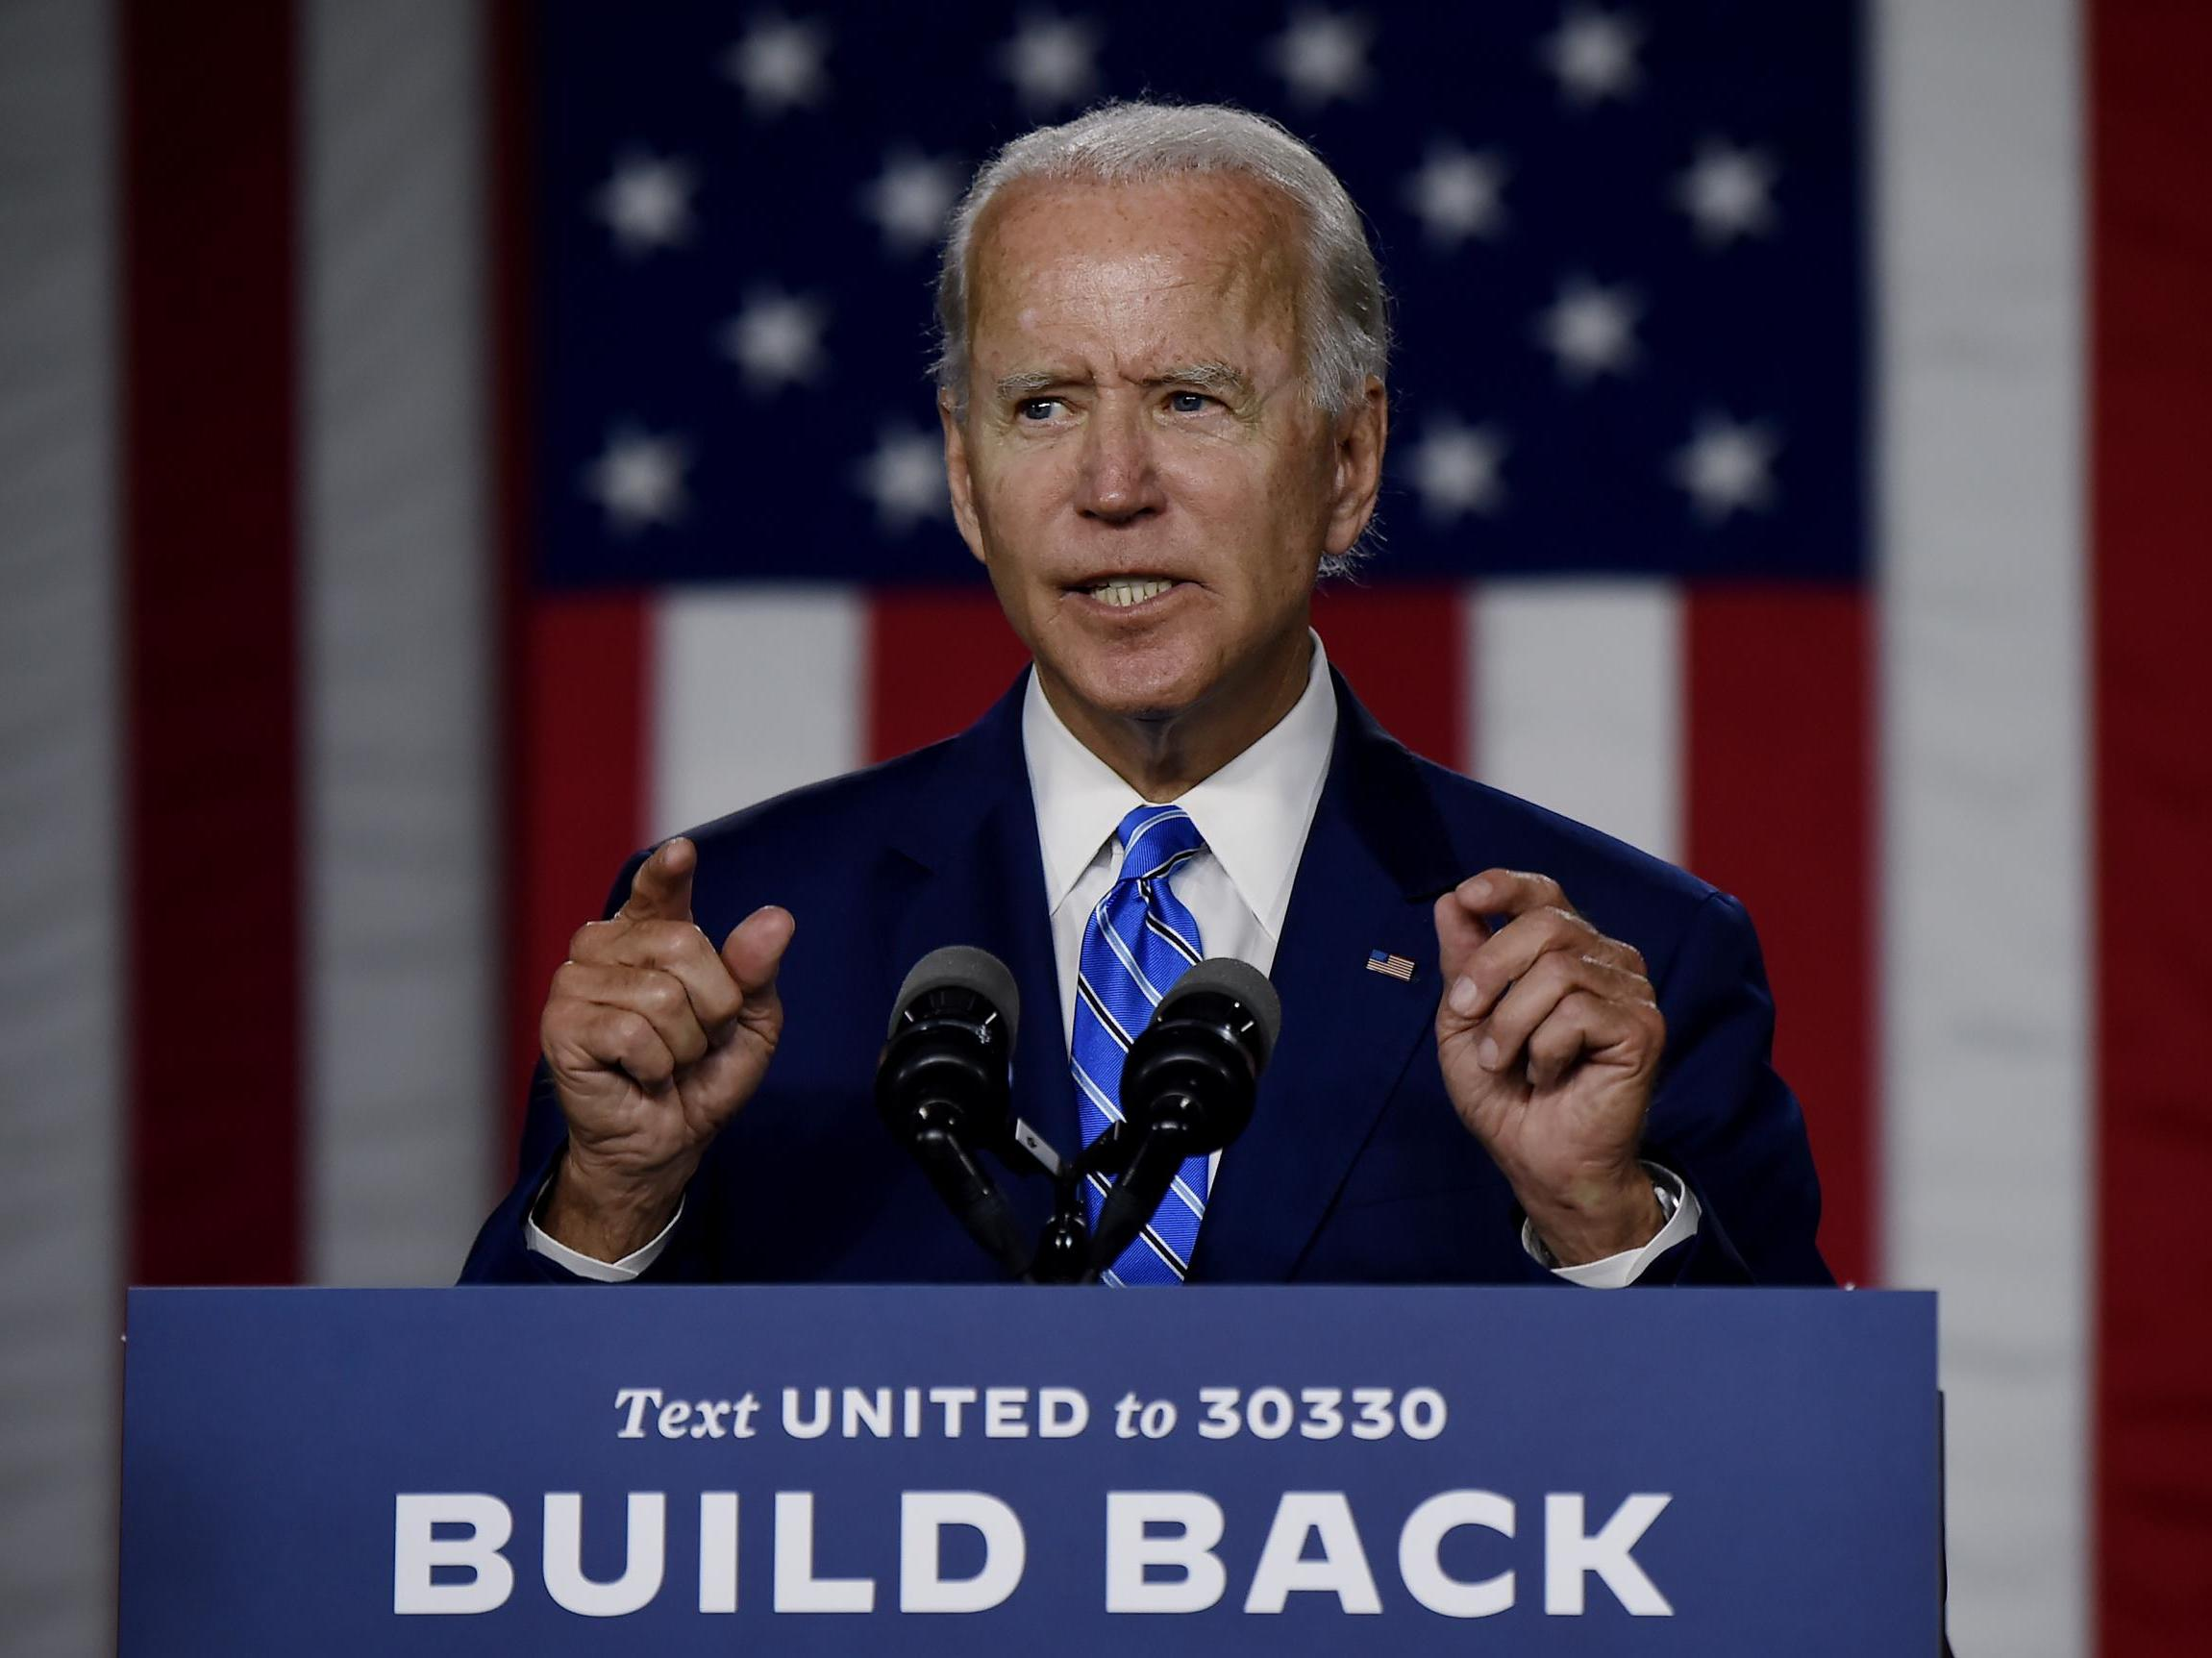 Joe Biden warns of potential Russian interference in the upcoming election after receiving intelligence briefings thumbnail